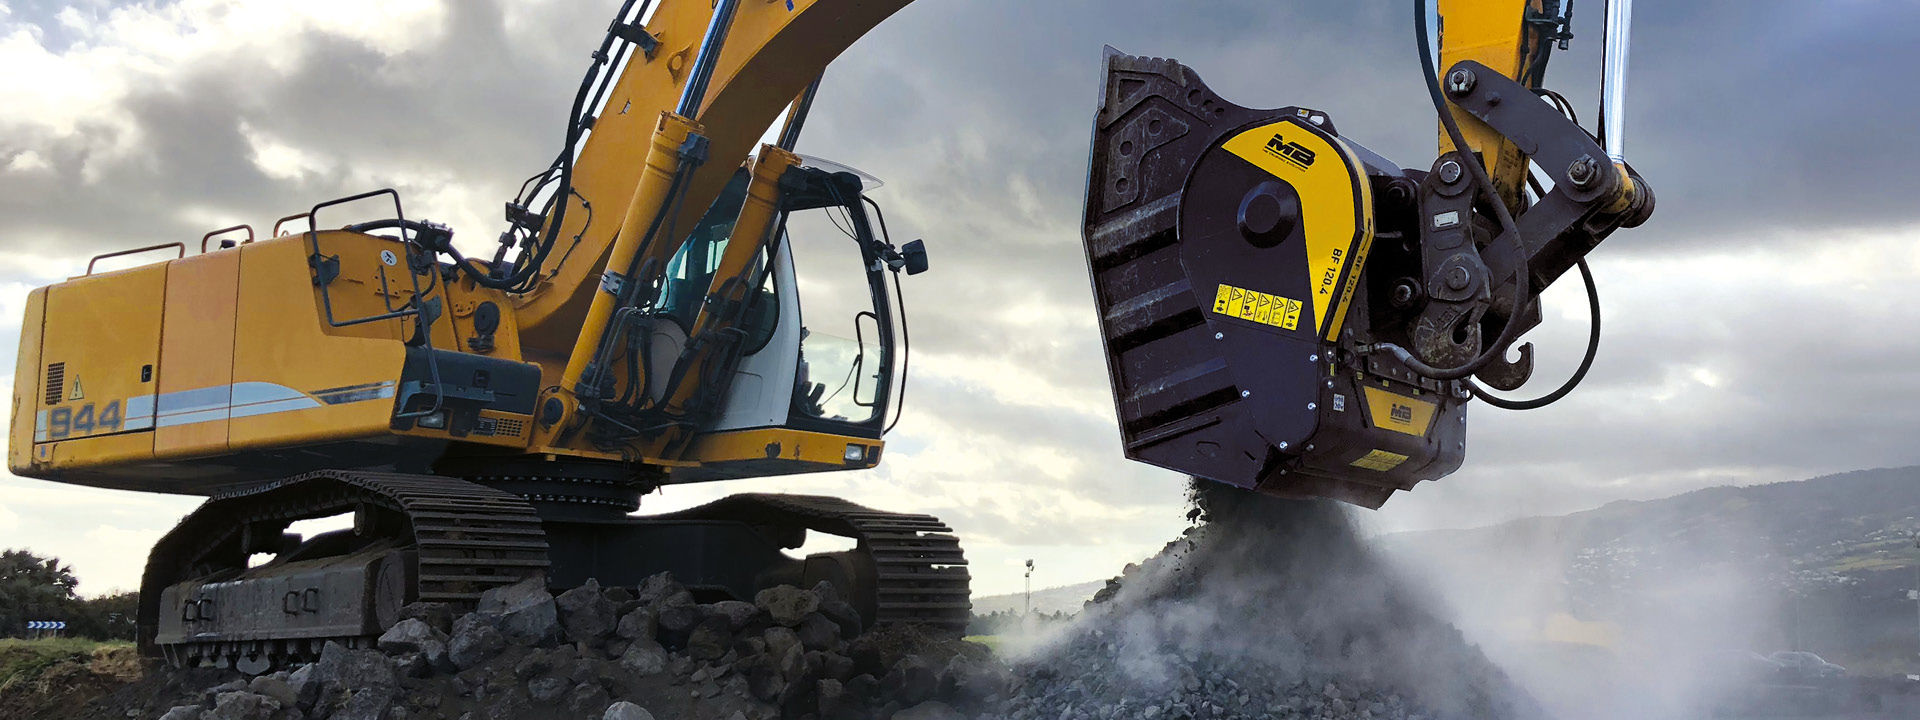 Turn your excavator into a real crusher